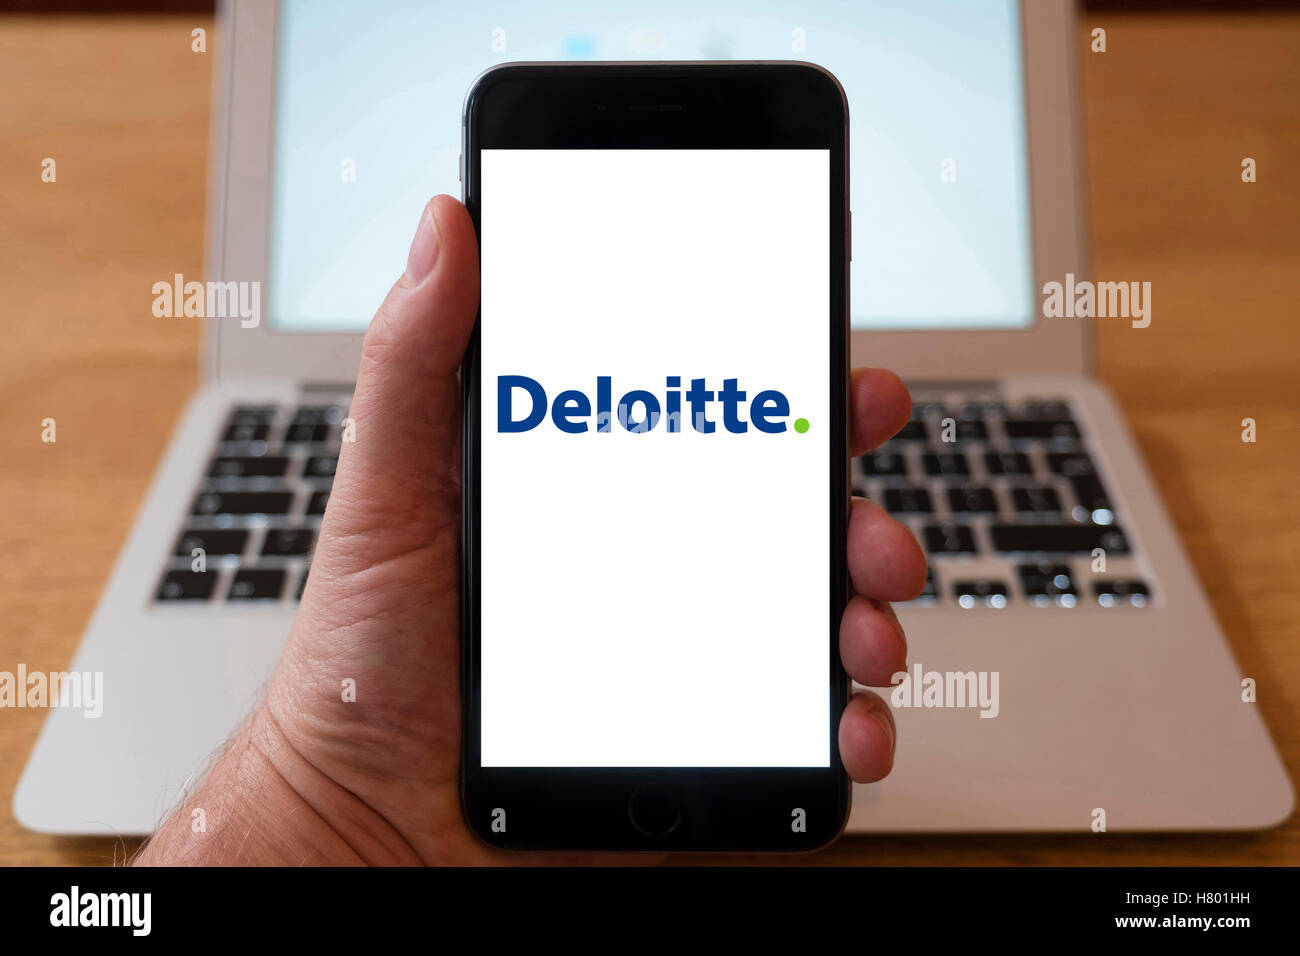 Using iPhone smartphone to display logo of Deloitte financial service company - Stock Image